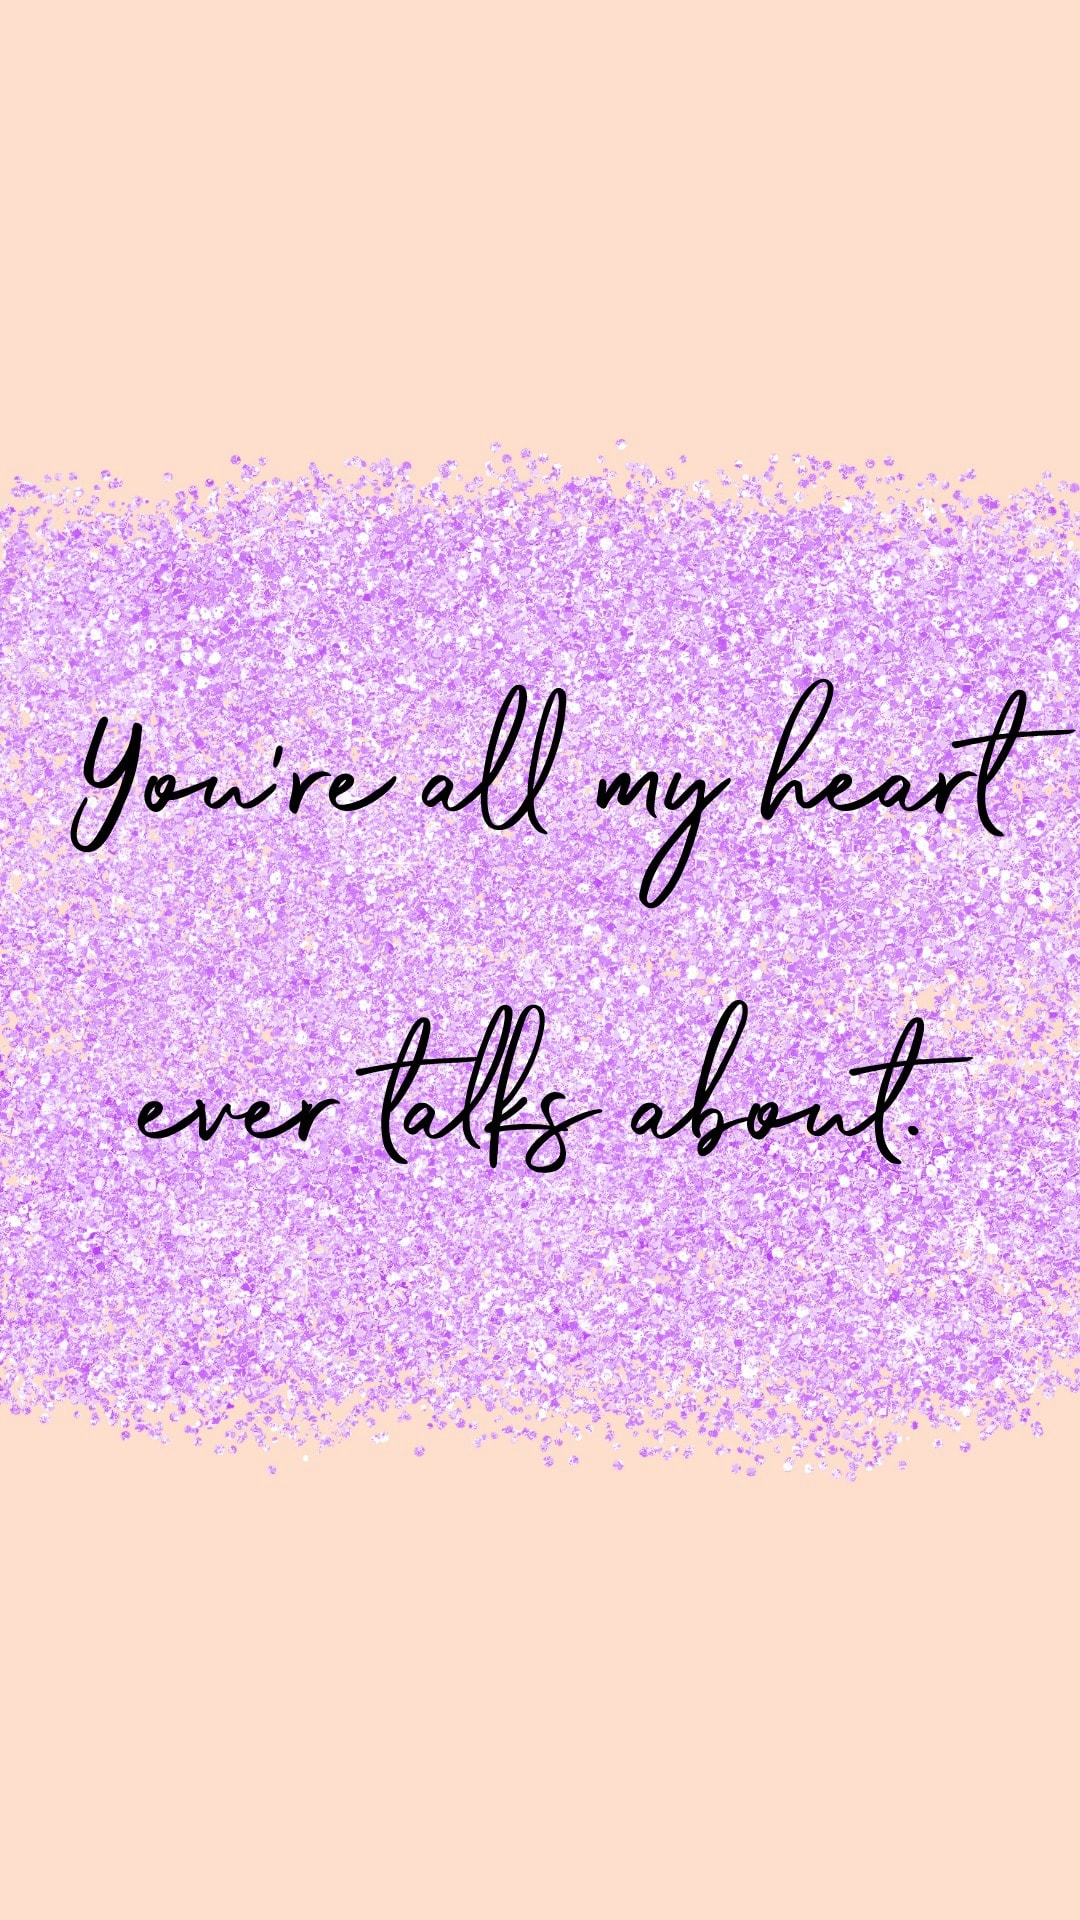 You're all my heart ever talks about.